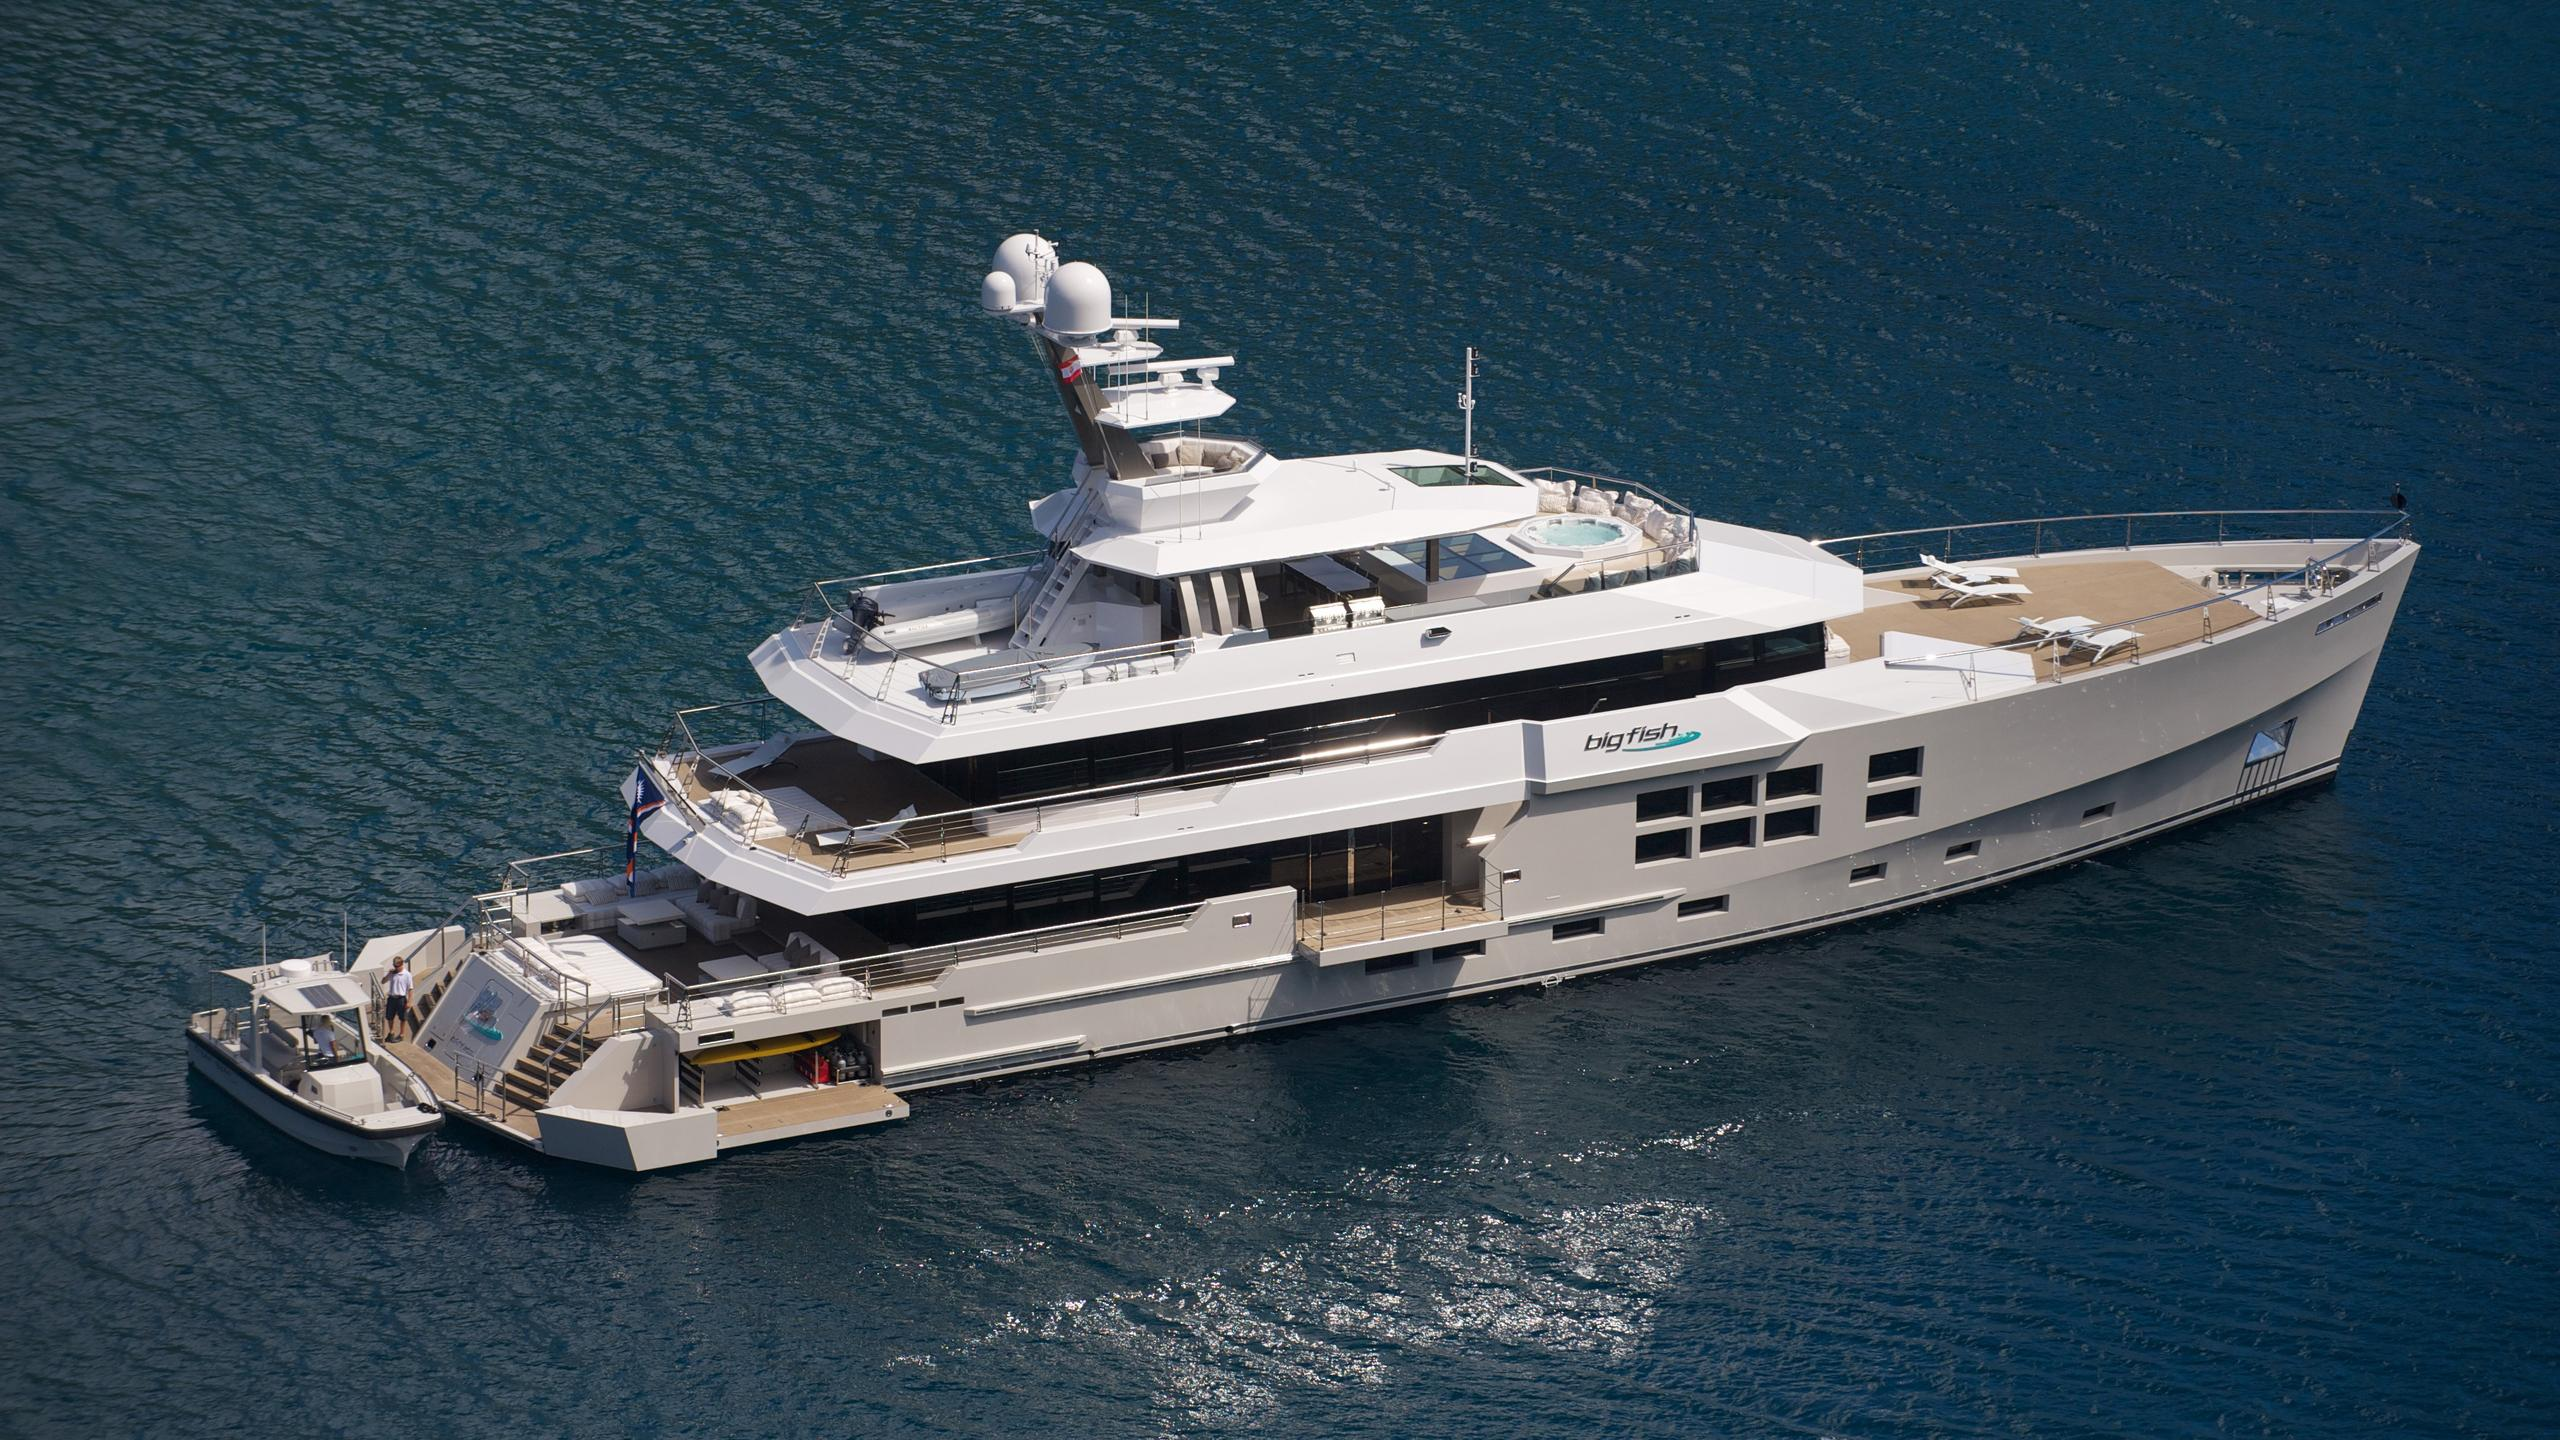 Big fish yacht exterior